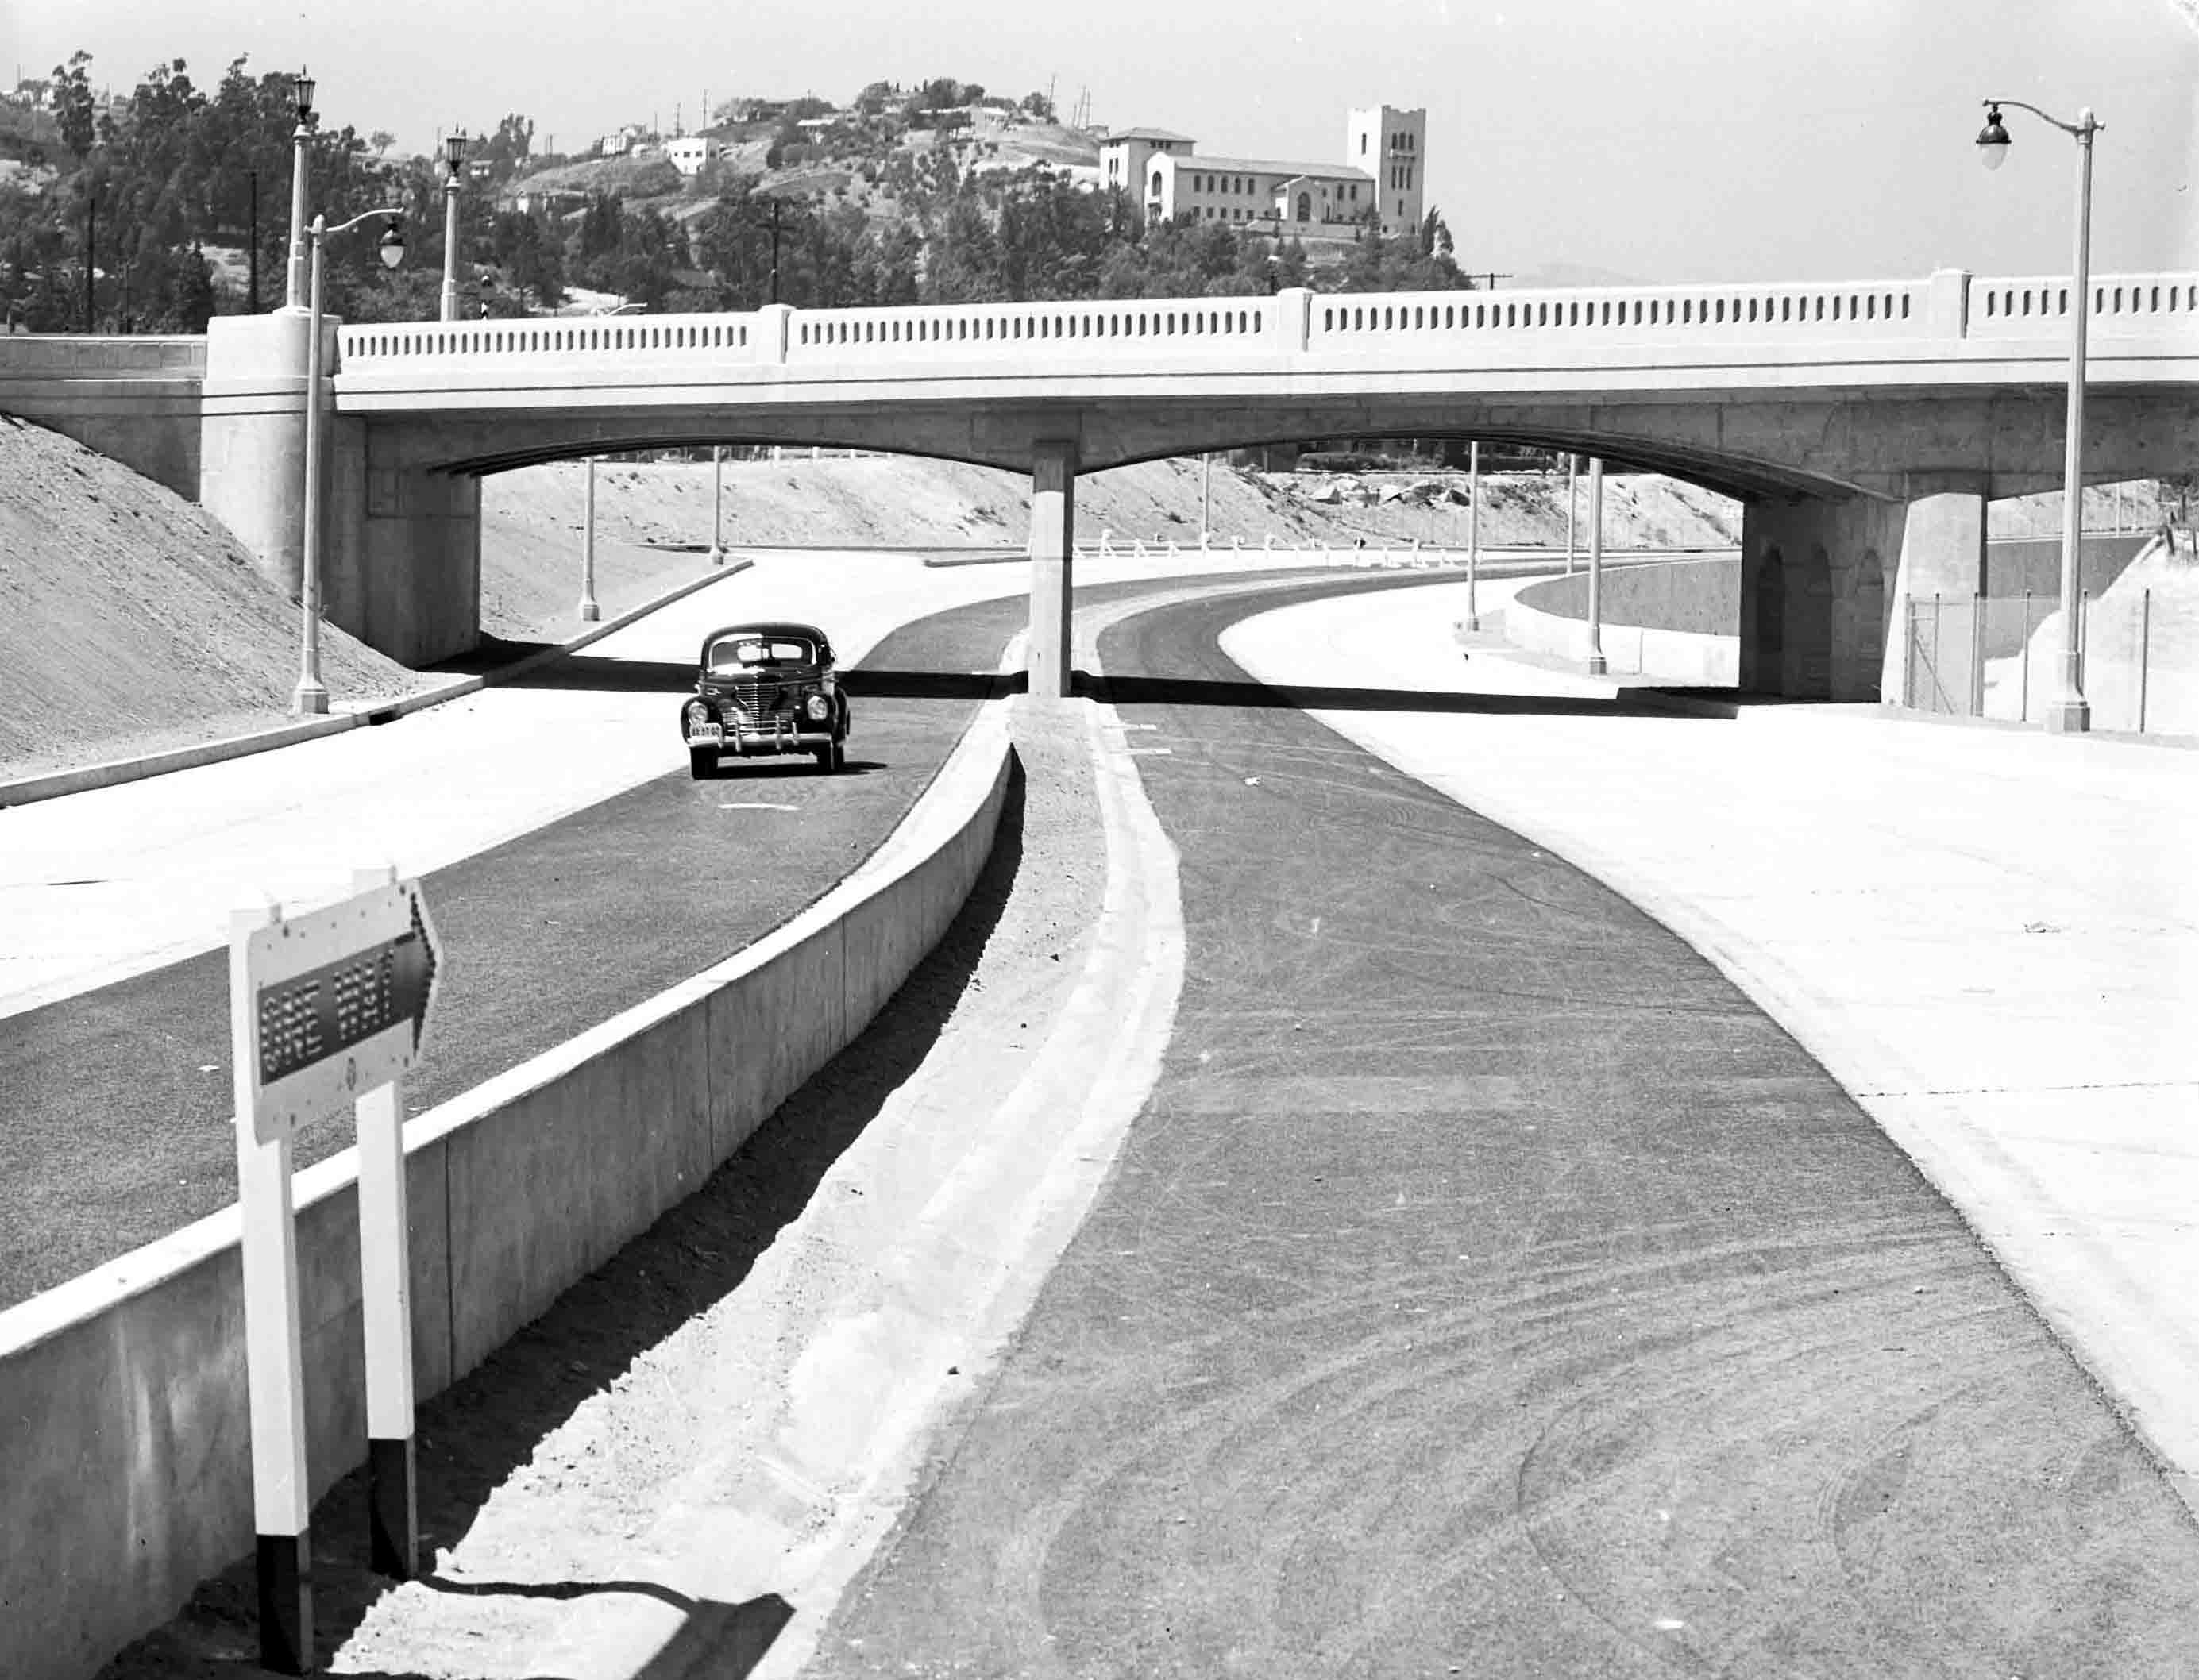 The Arroyo Seco Parkway after its completion in 1940. Courtesy of the Automobile Club of Southern California Archives.